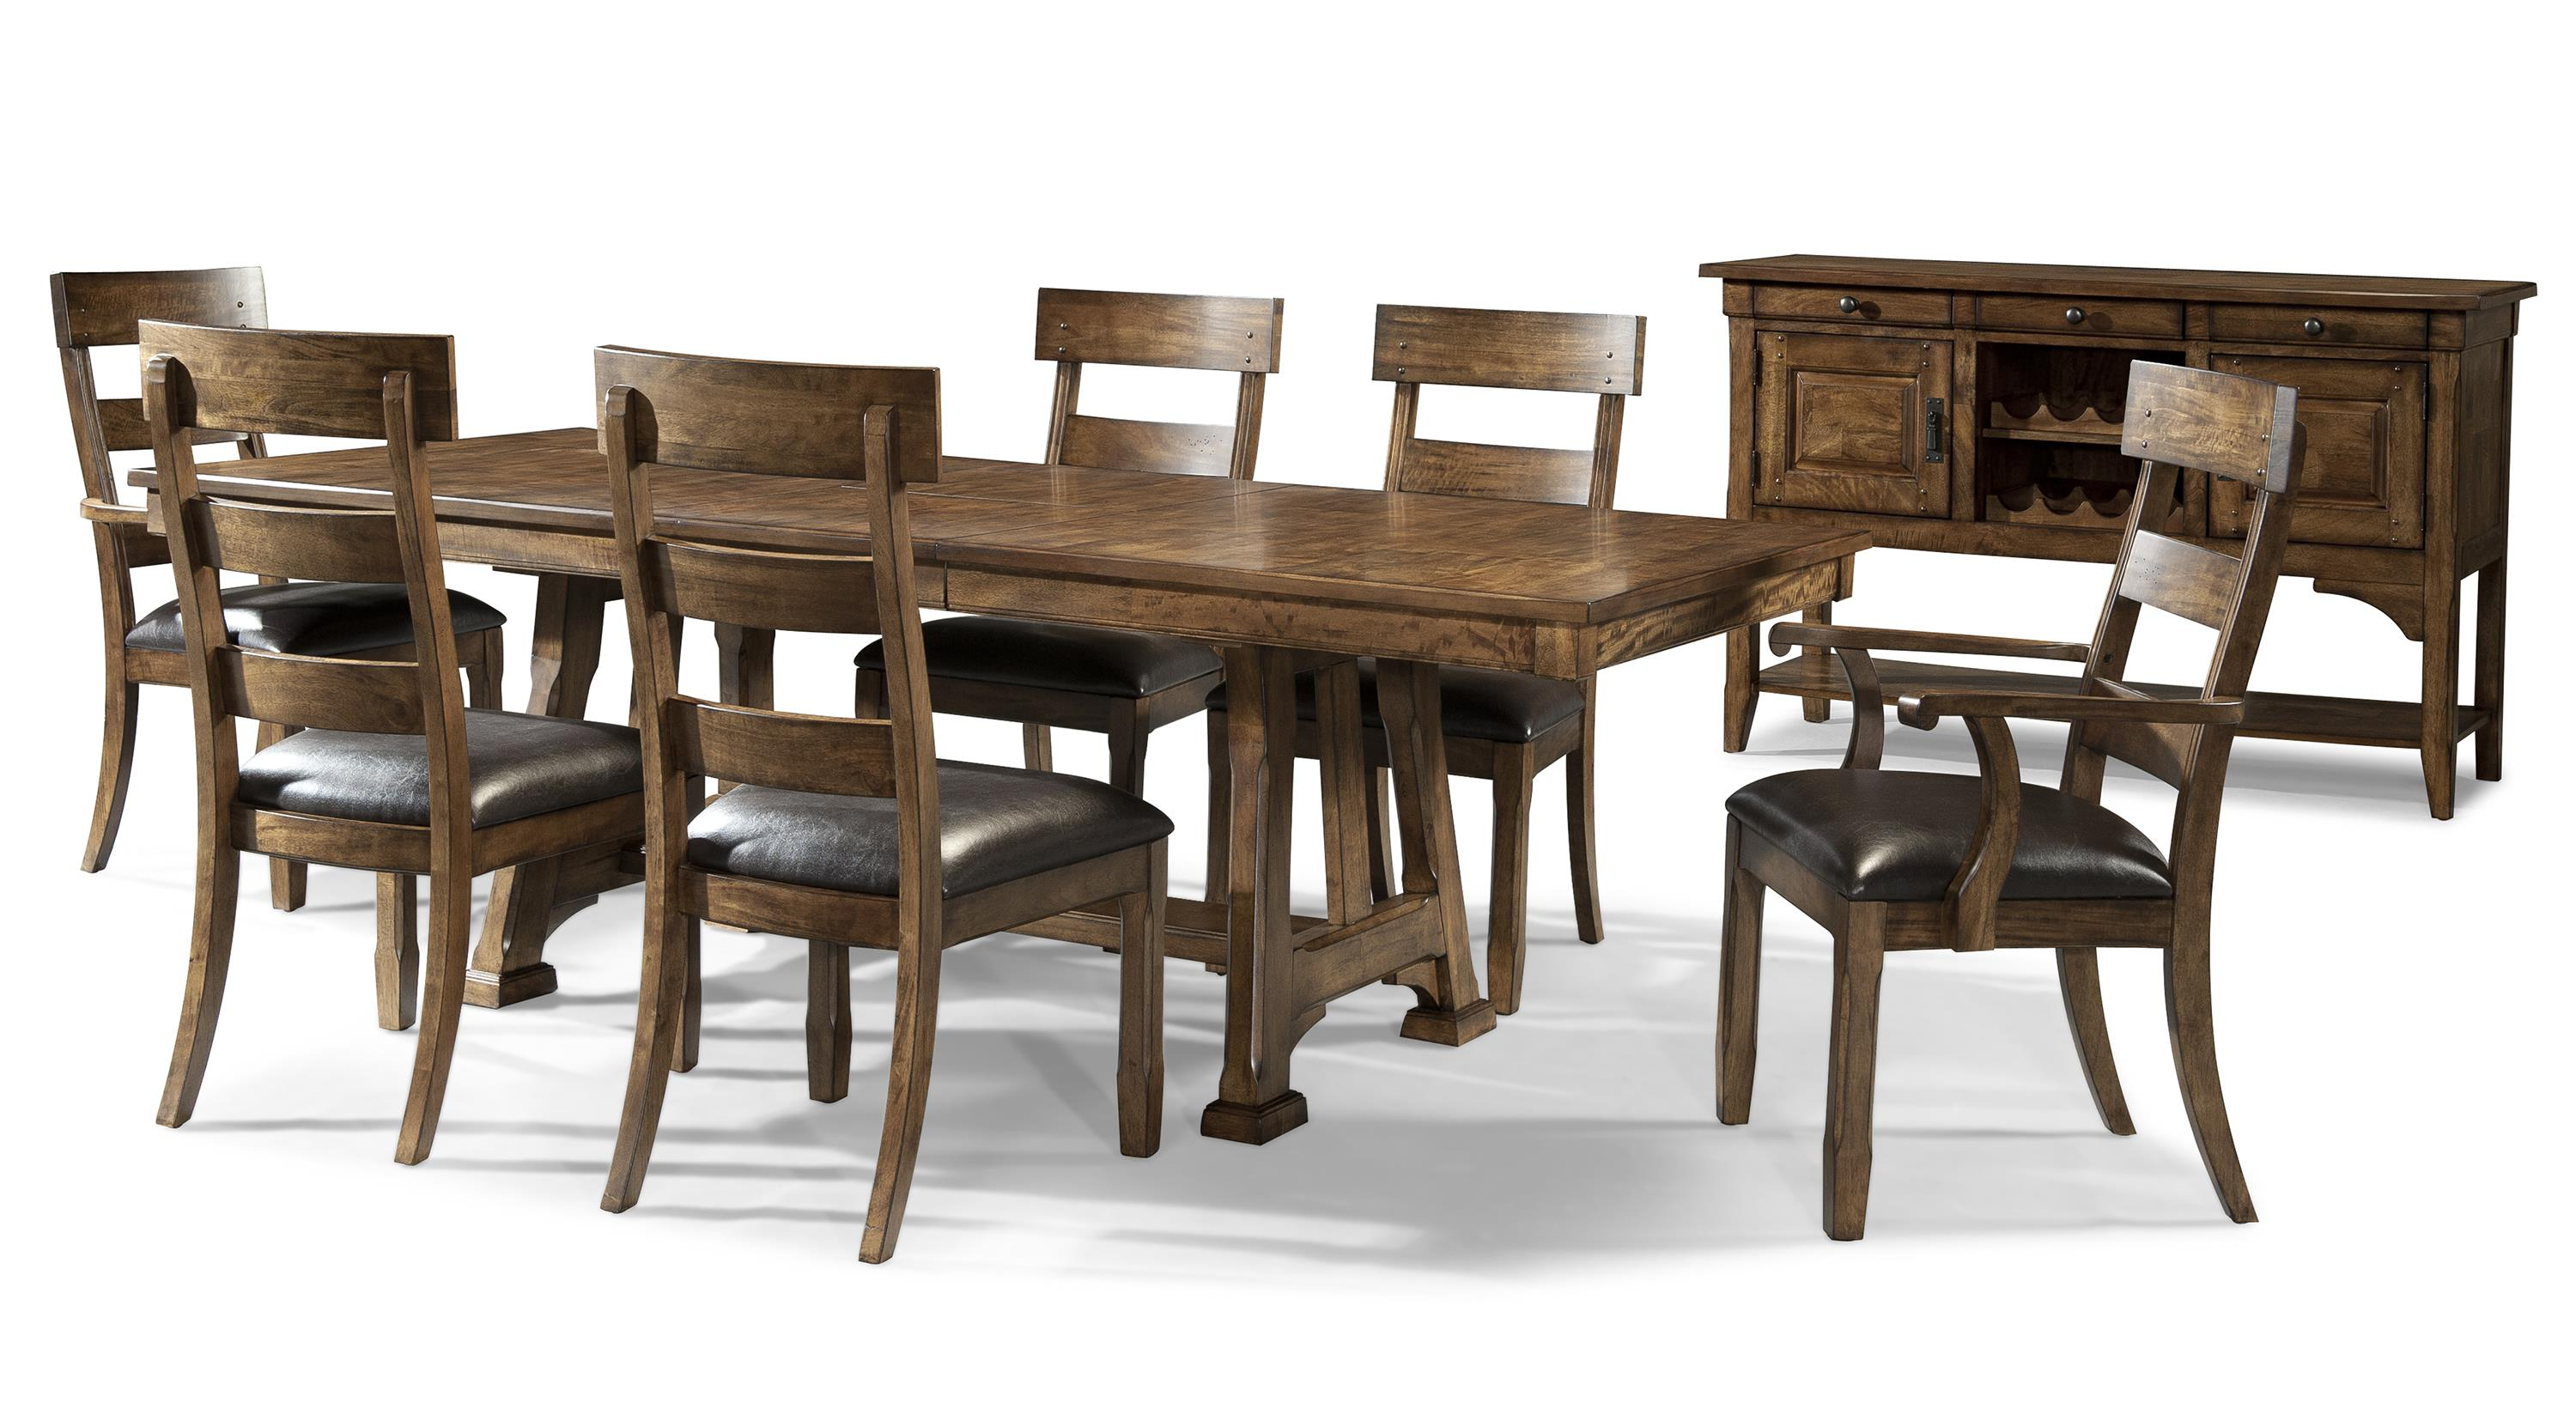 Ozark Formal Dining Room Group by AAmerica at Suburban Furniture